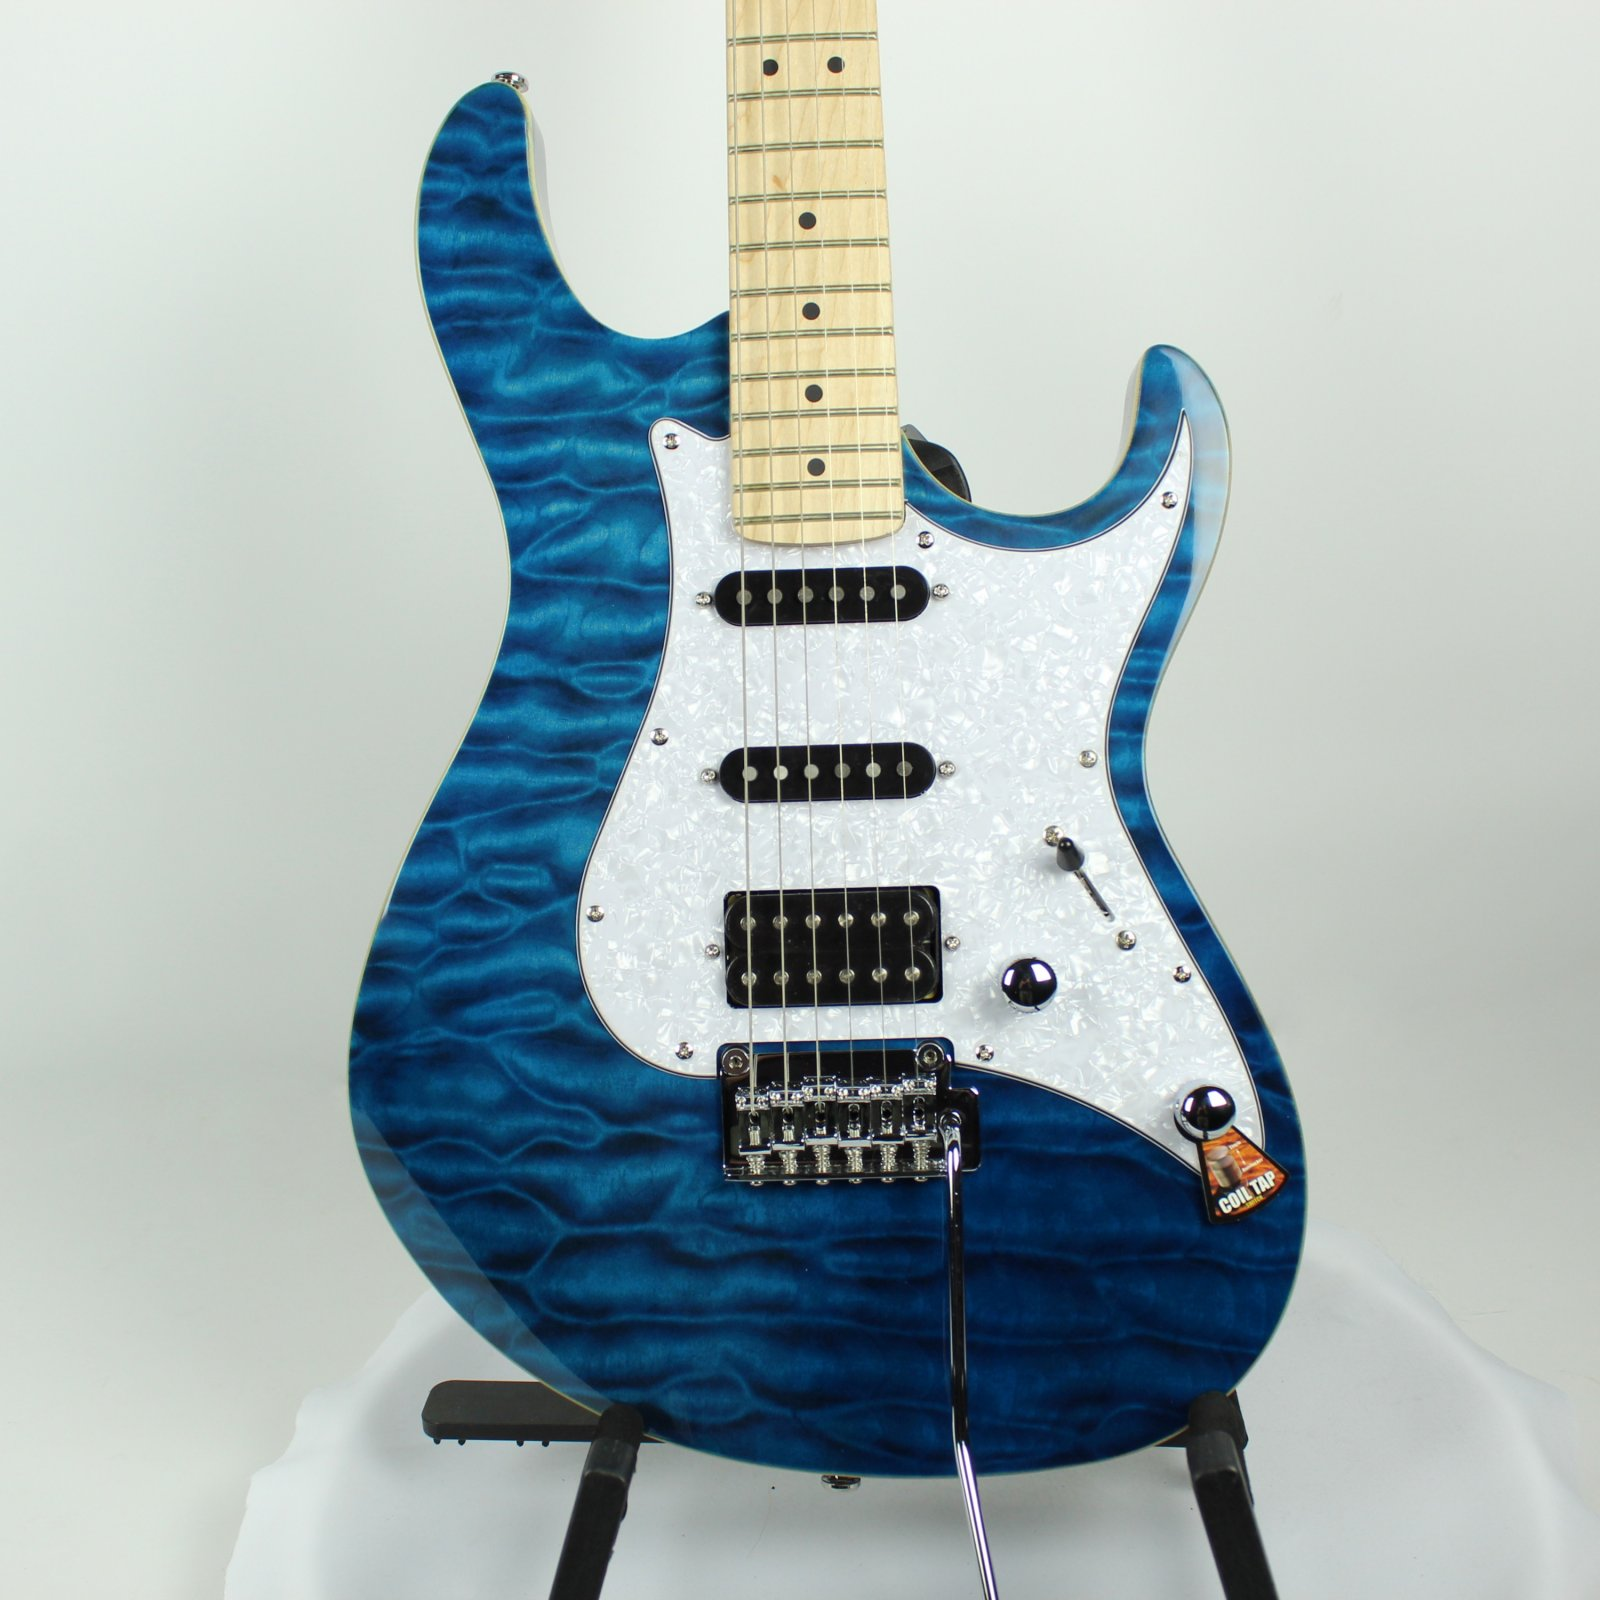 AMERICAN BASSWOOD BODY WITH QUILTED MAPLE TOP